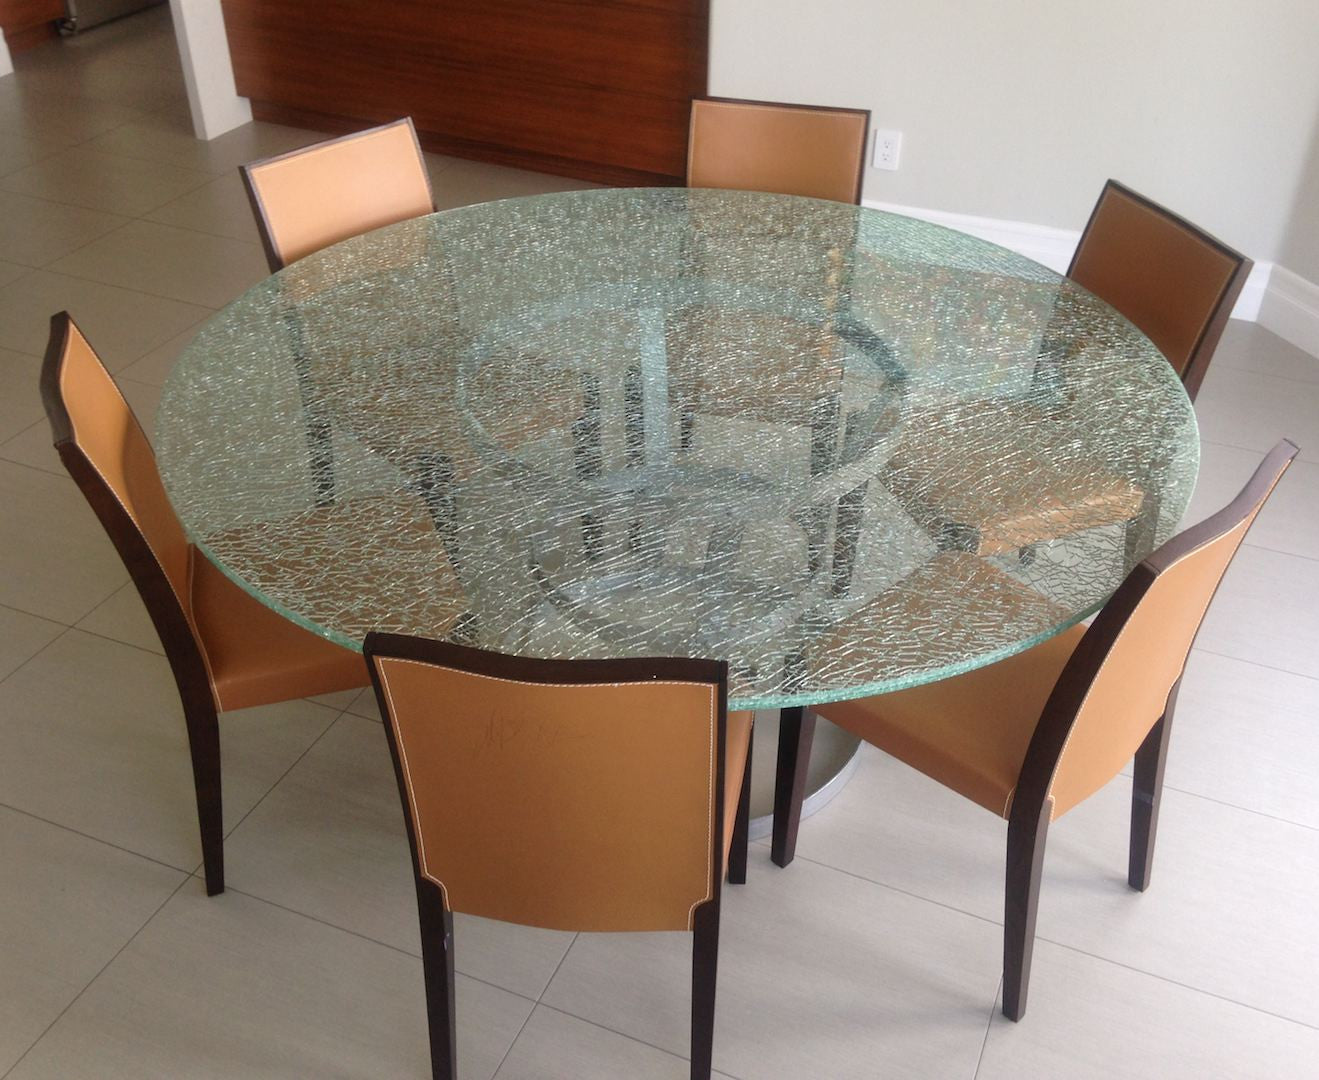 Picture of: Round Crackle Glass Dining Table With Tripod Metal Base Mortise Tenon